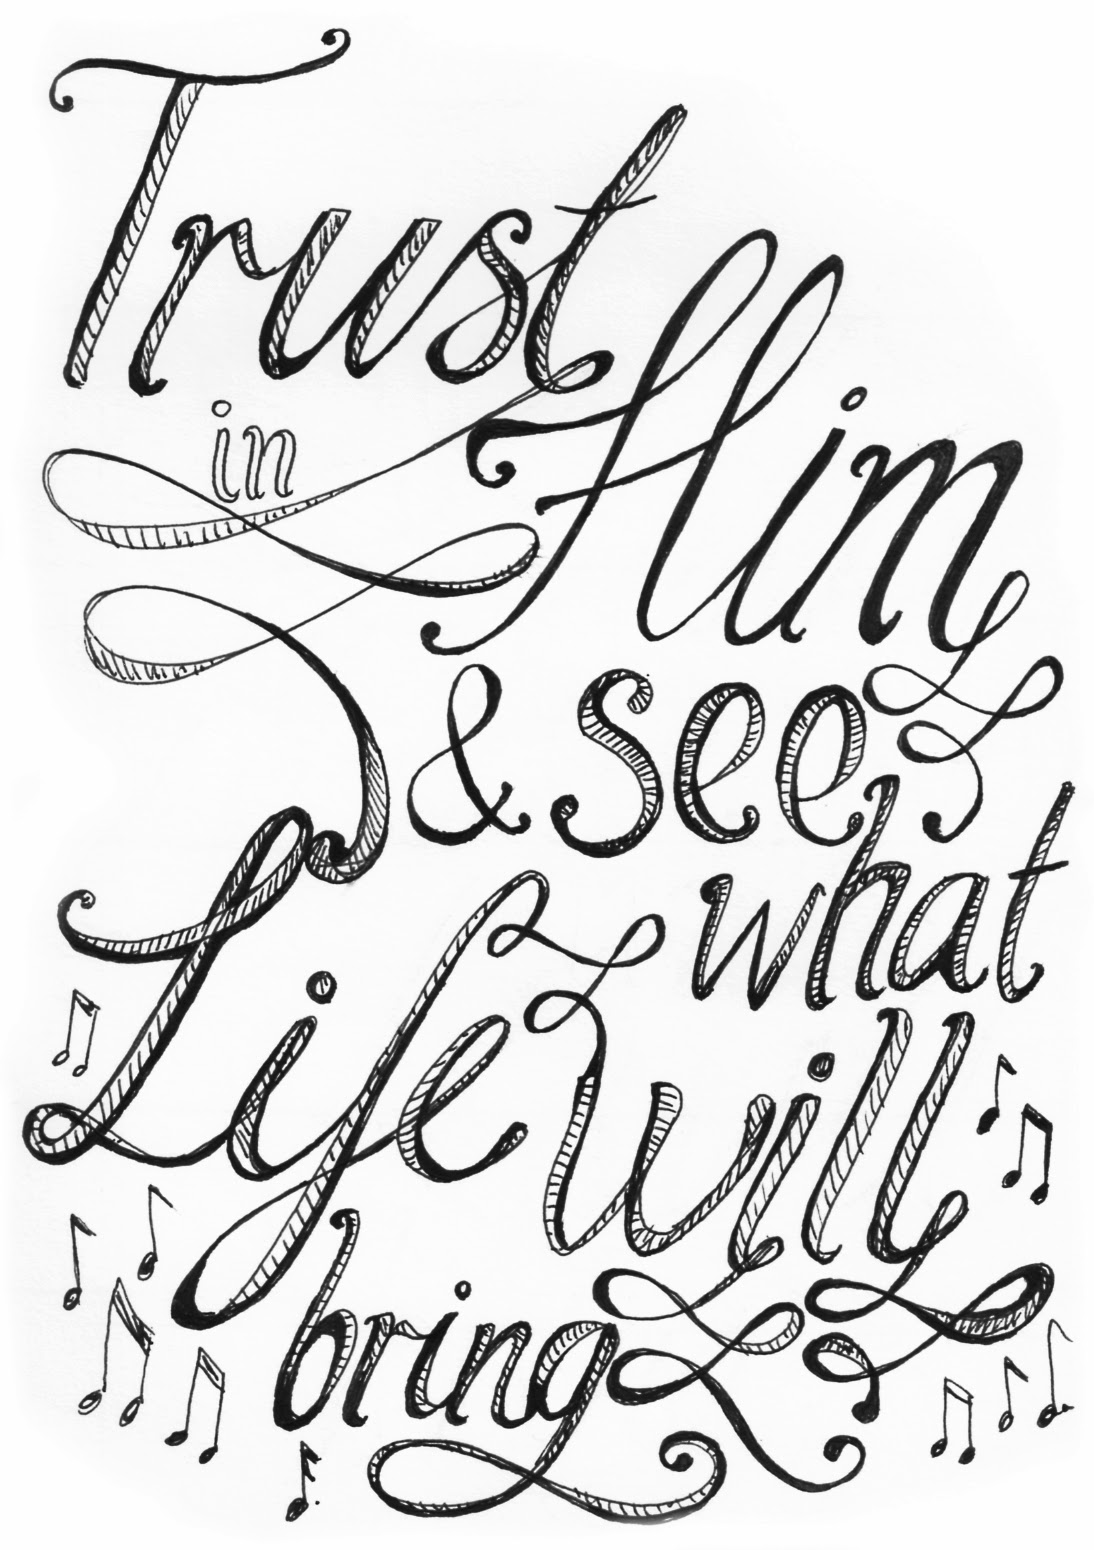 Trust in Him and see what life will bring